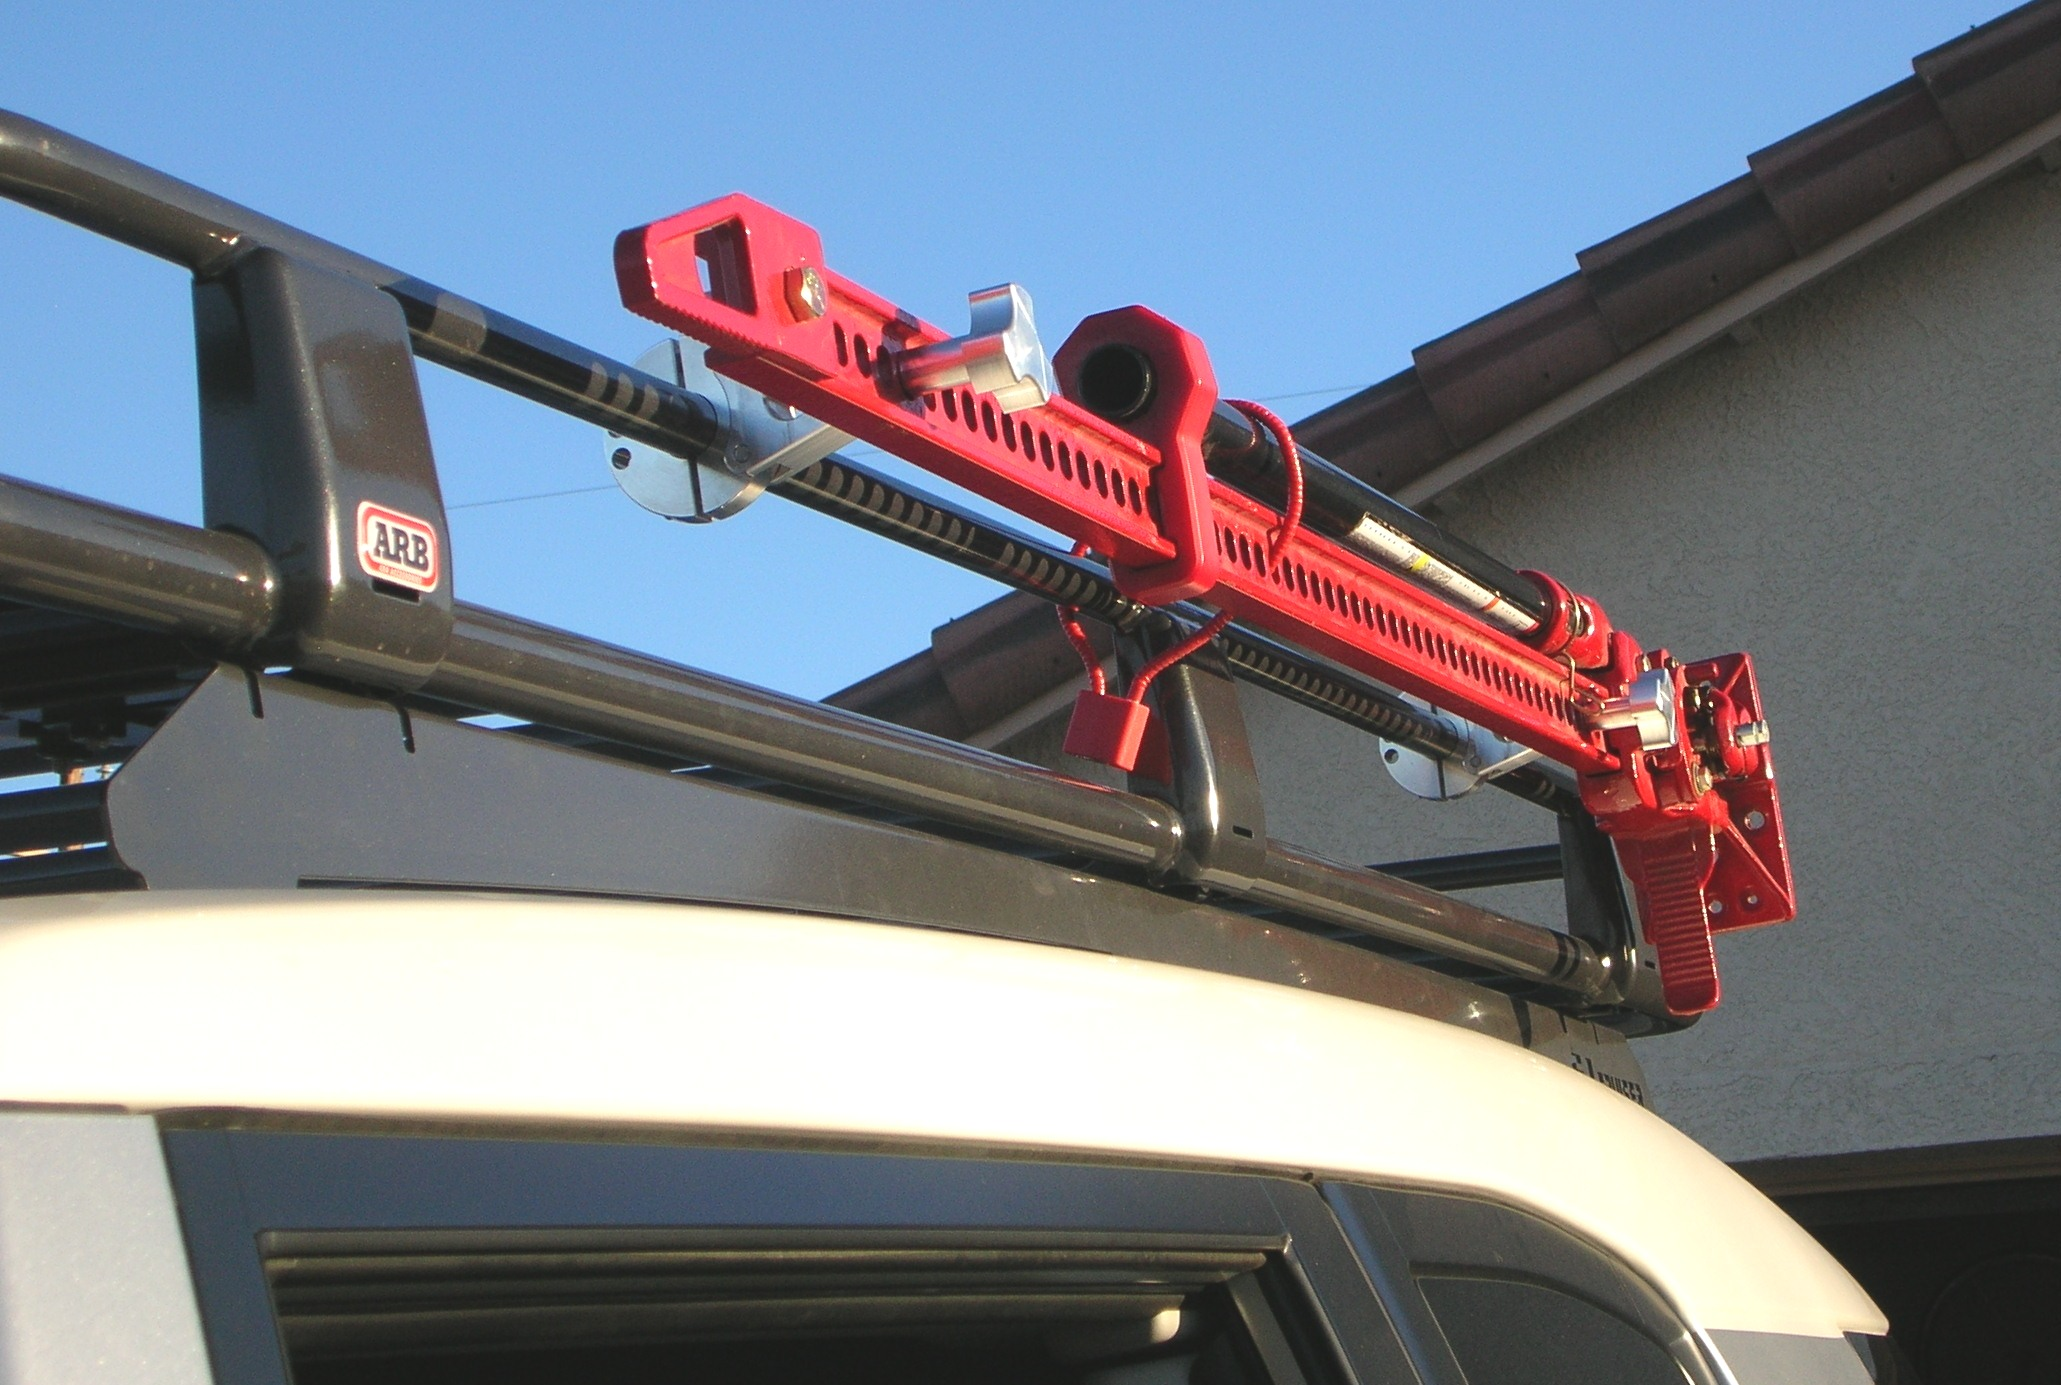 Fj Cruiser Roof Racks By Baja Rack Gobi Arb Toyota And